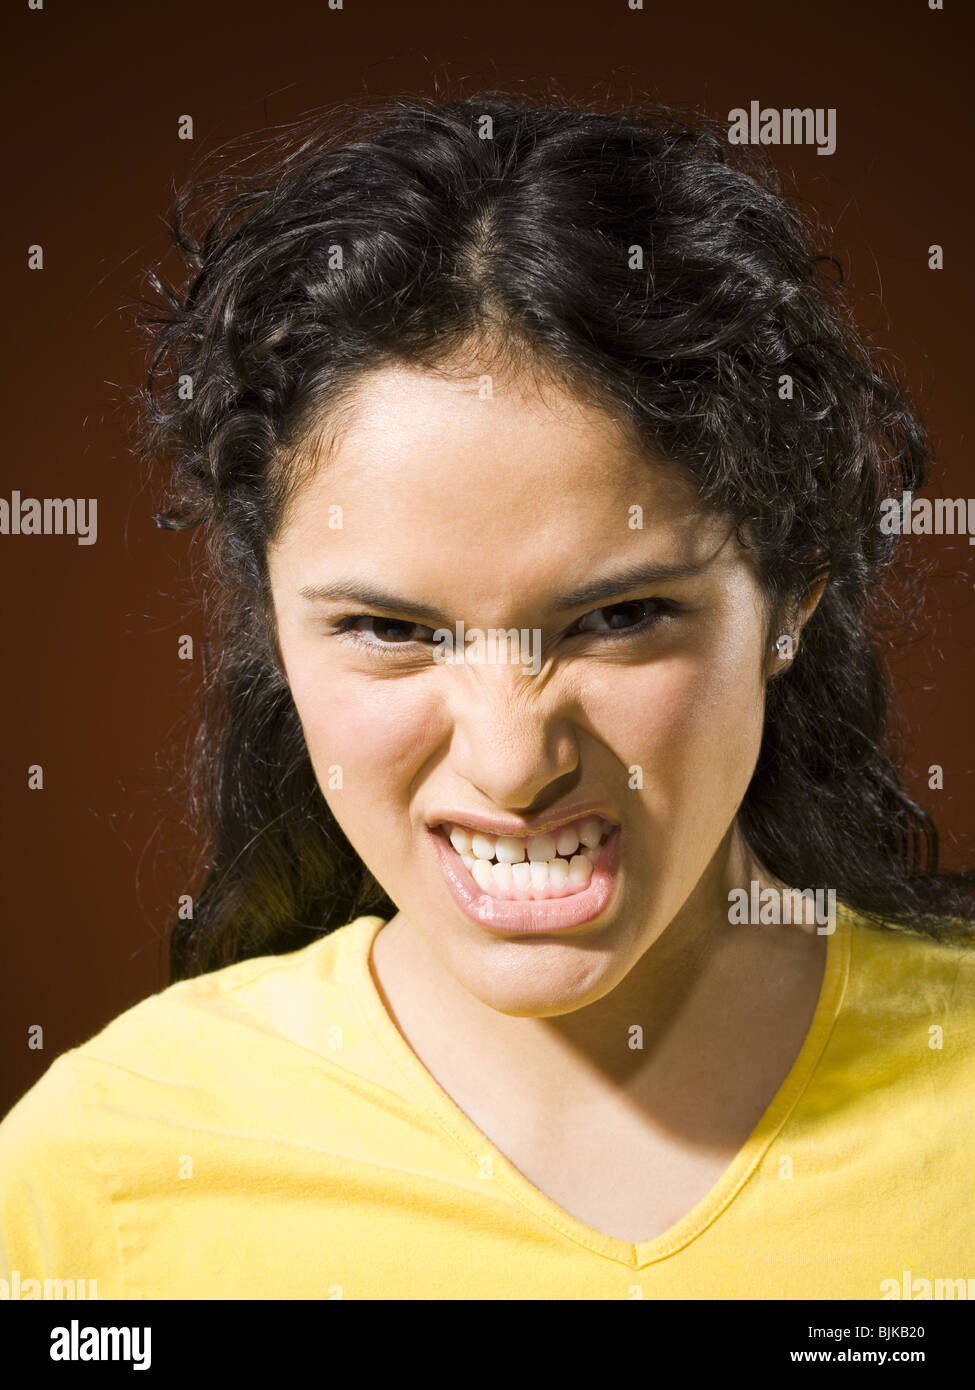 snarling person